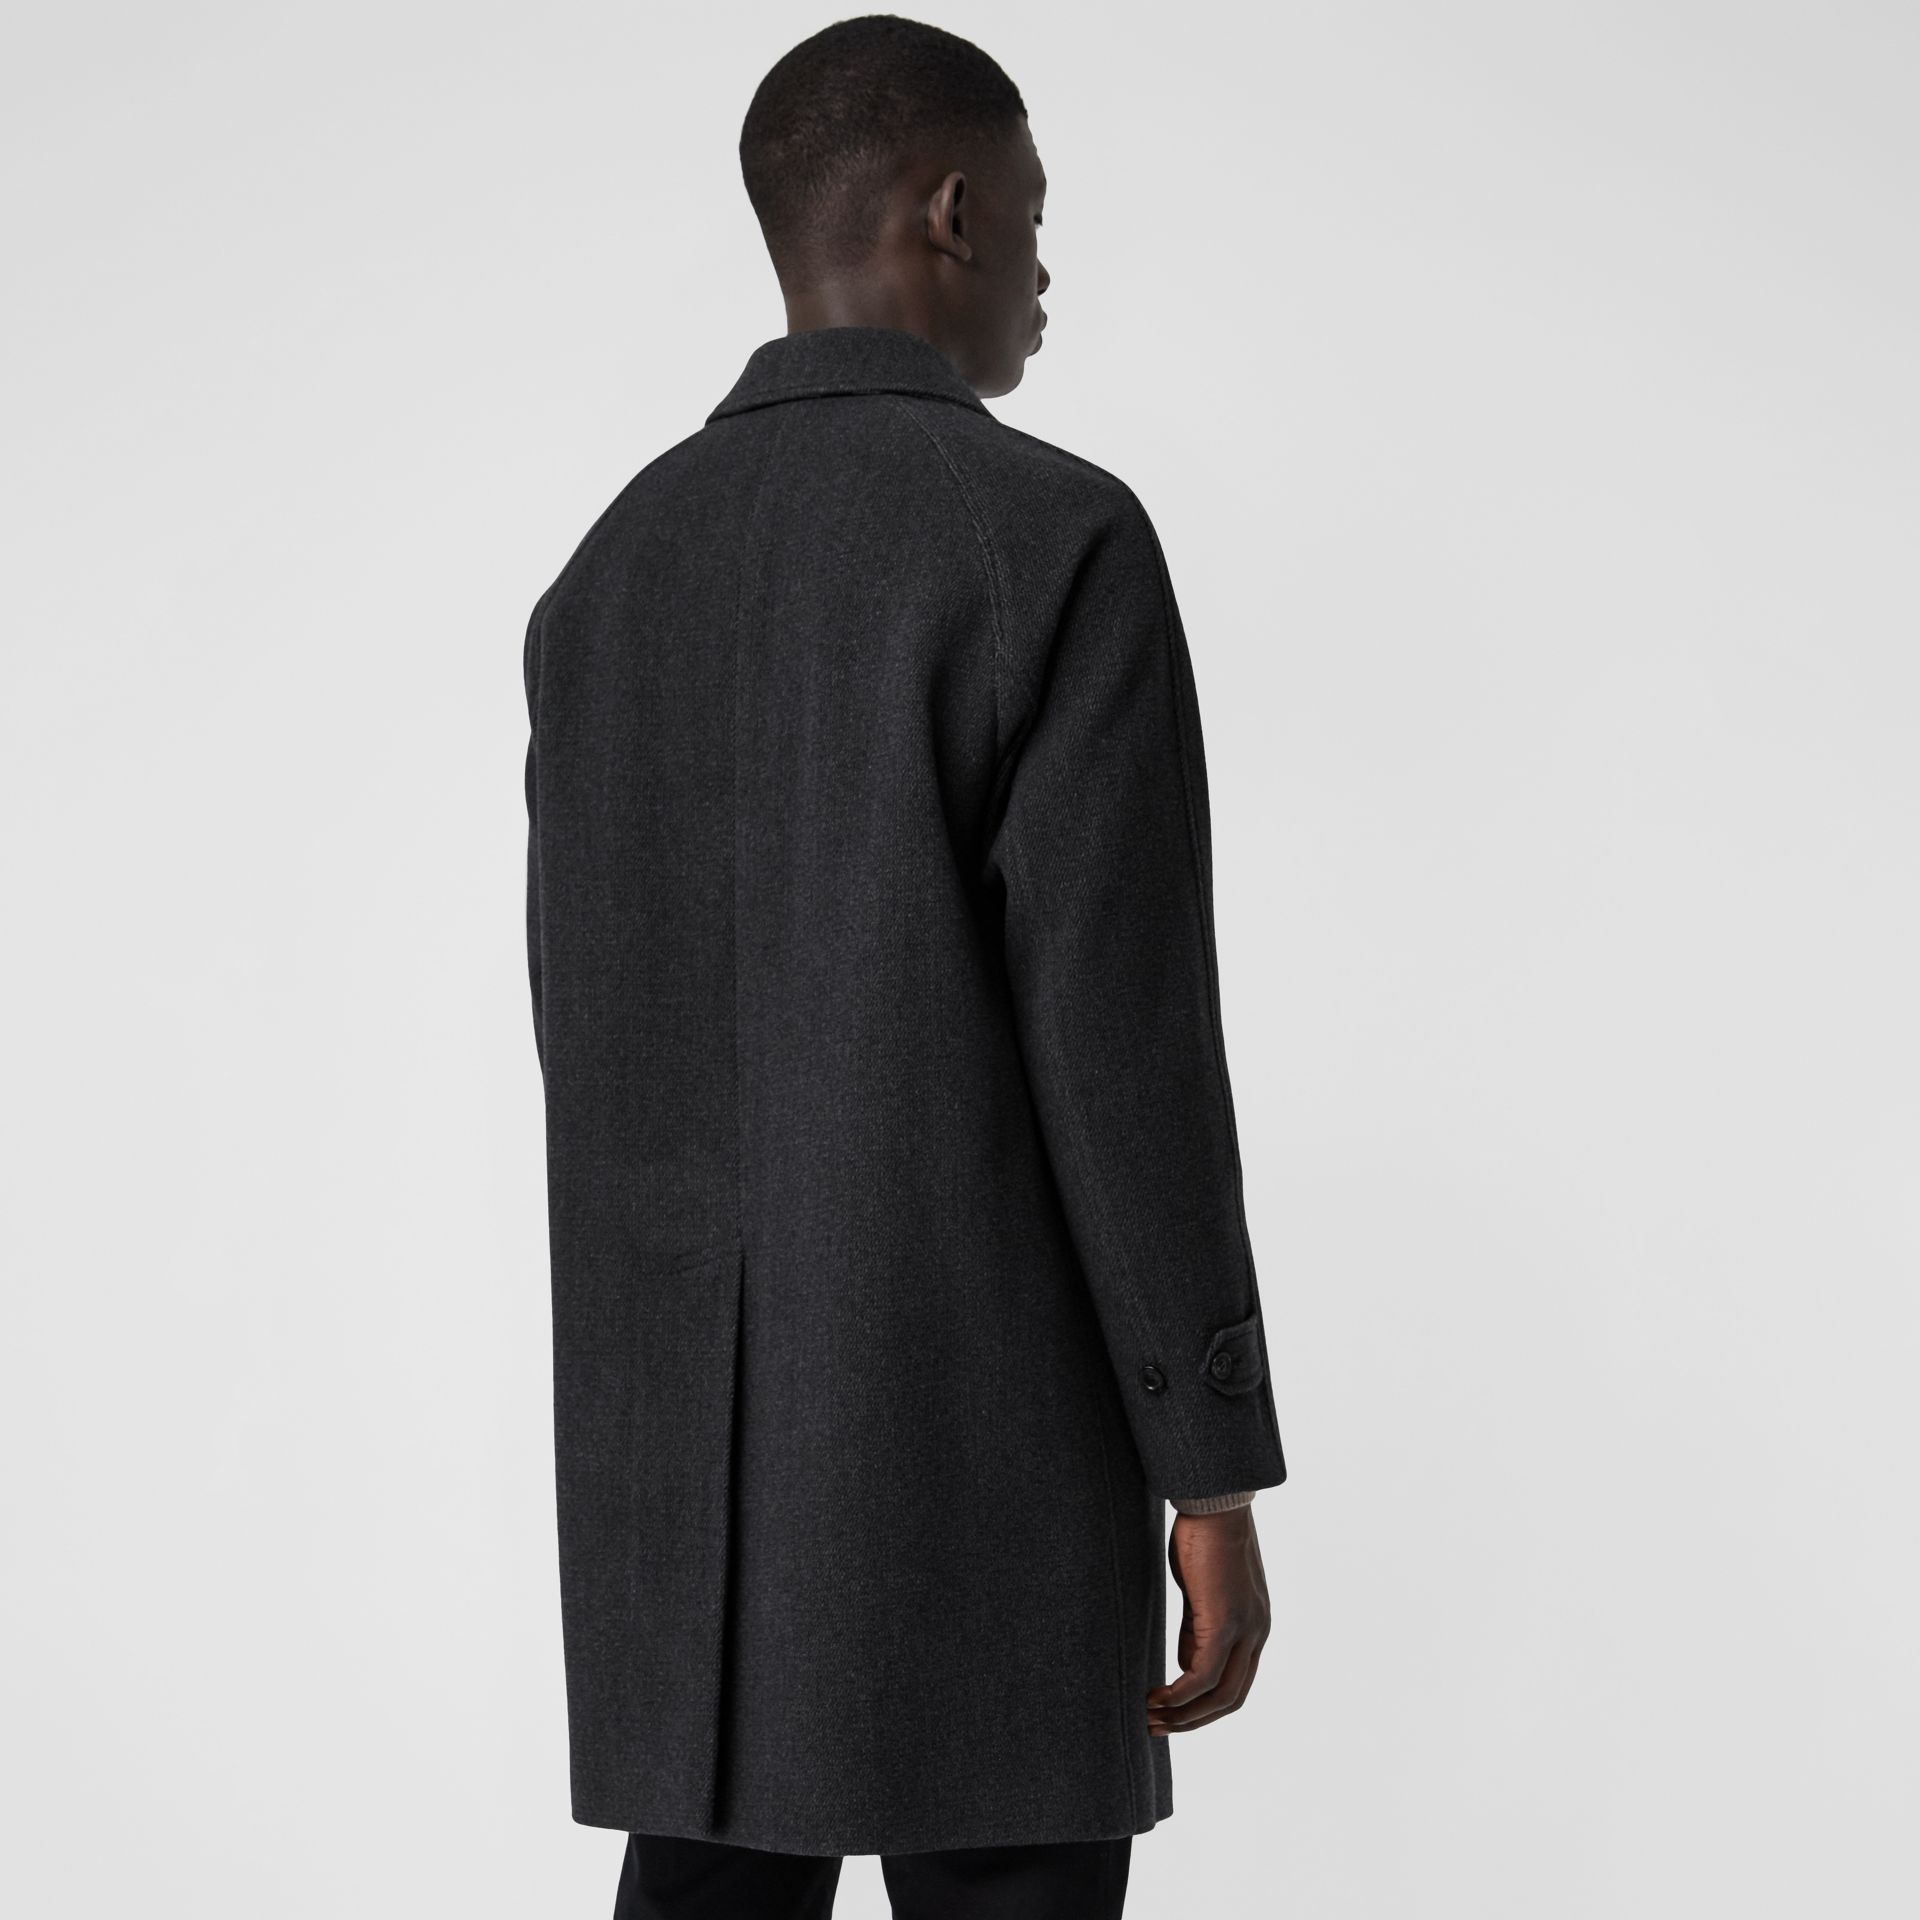 Wool Cashmere Blend Car Coat in Charcoal - Men | Burberry Hong Kong - gallery image 2